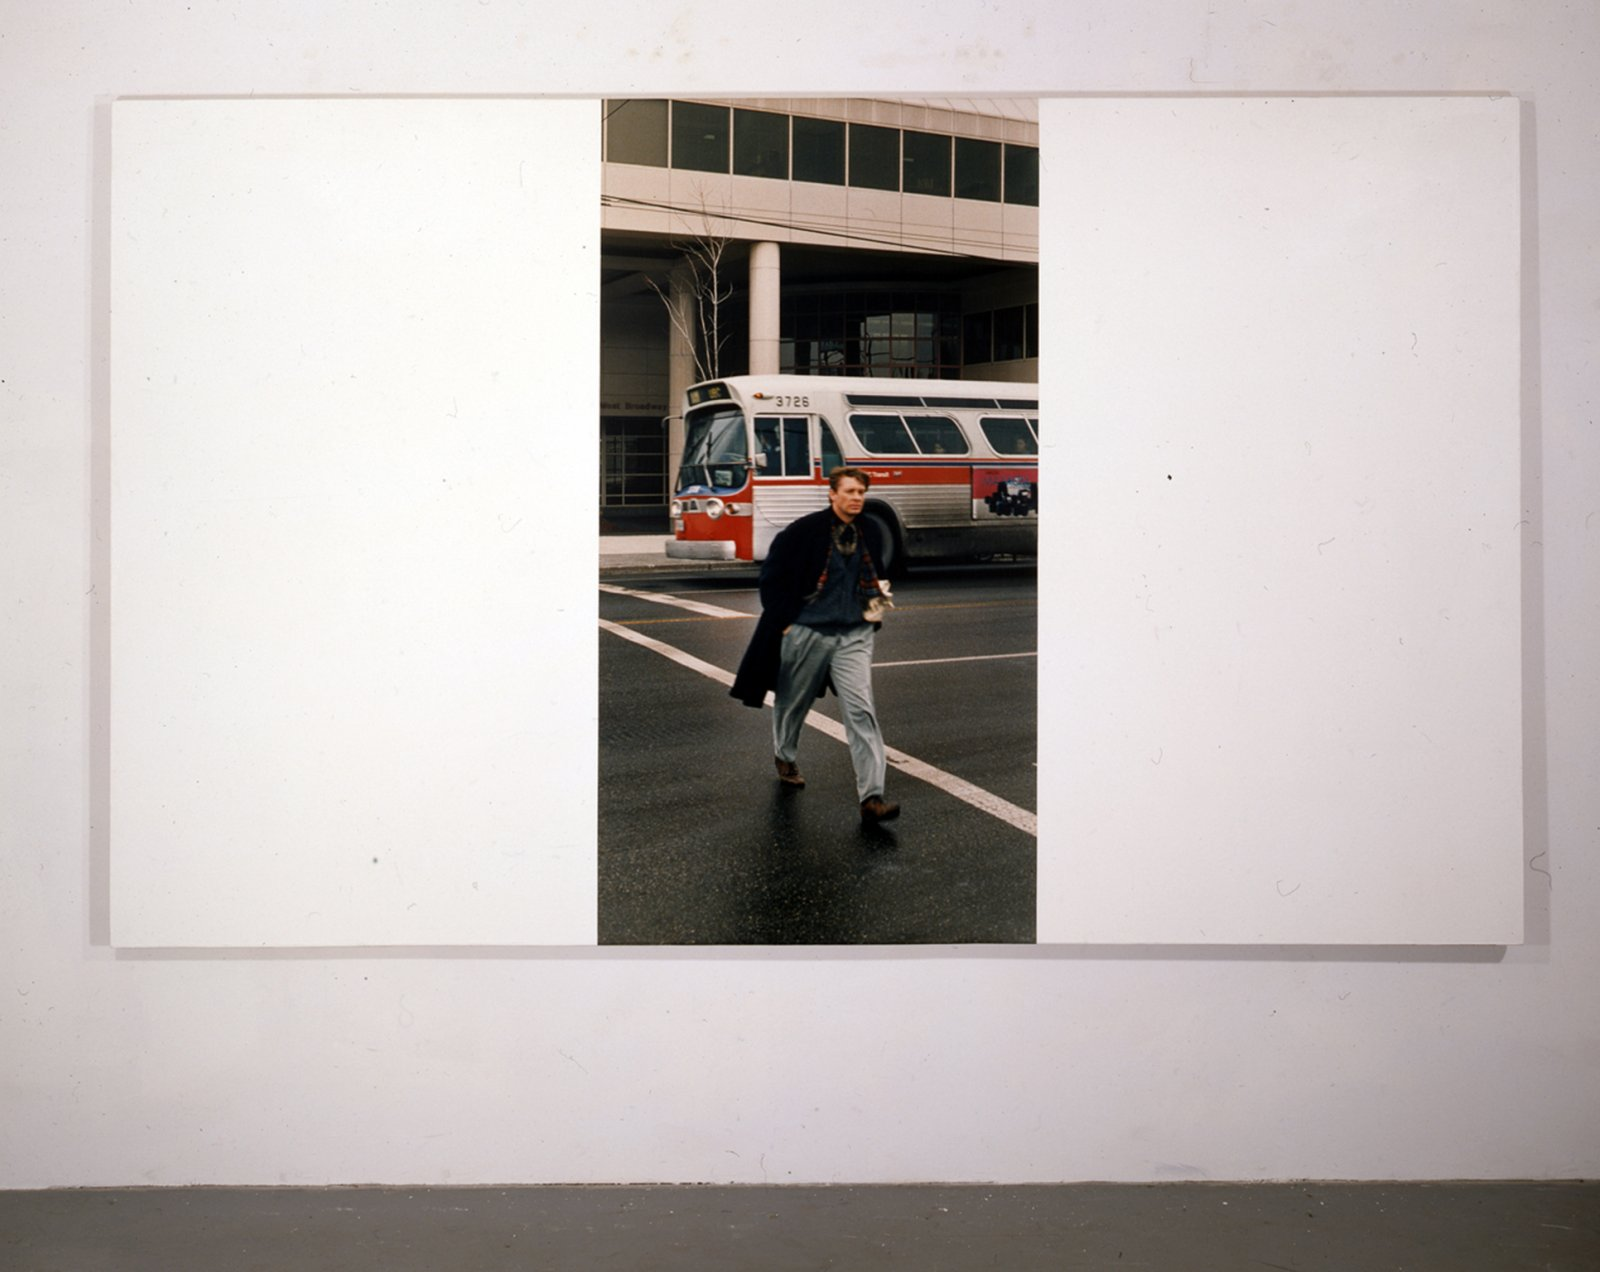 Ian Wallace,My Heroes in the Street IV (Keith), 1987,photolaminate and acrylic on linen,72 x 120 in. (183 x 305 cm)